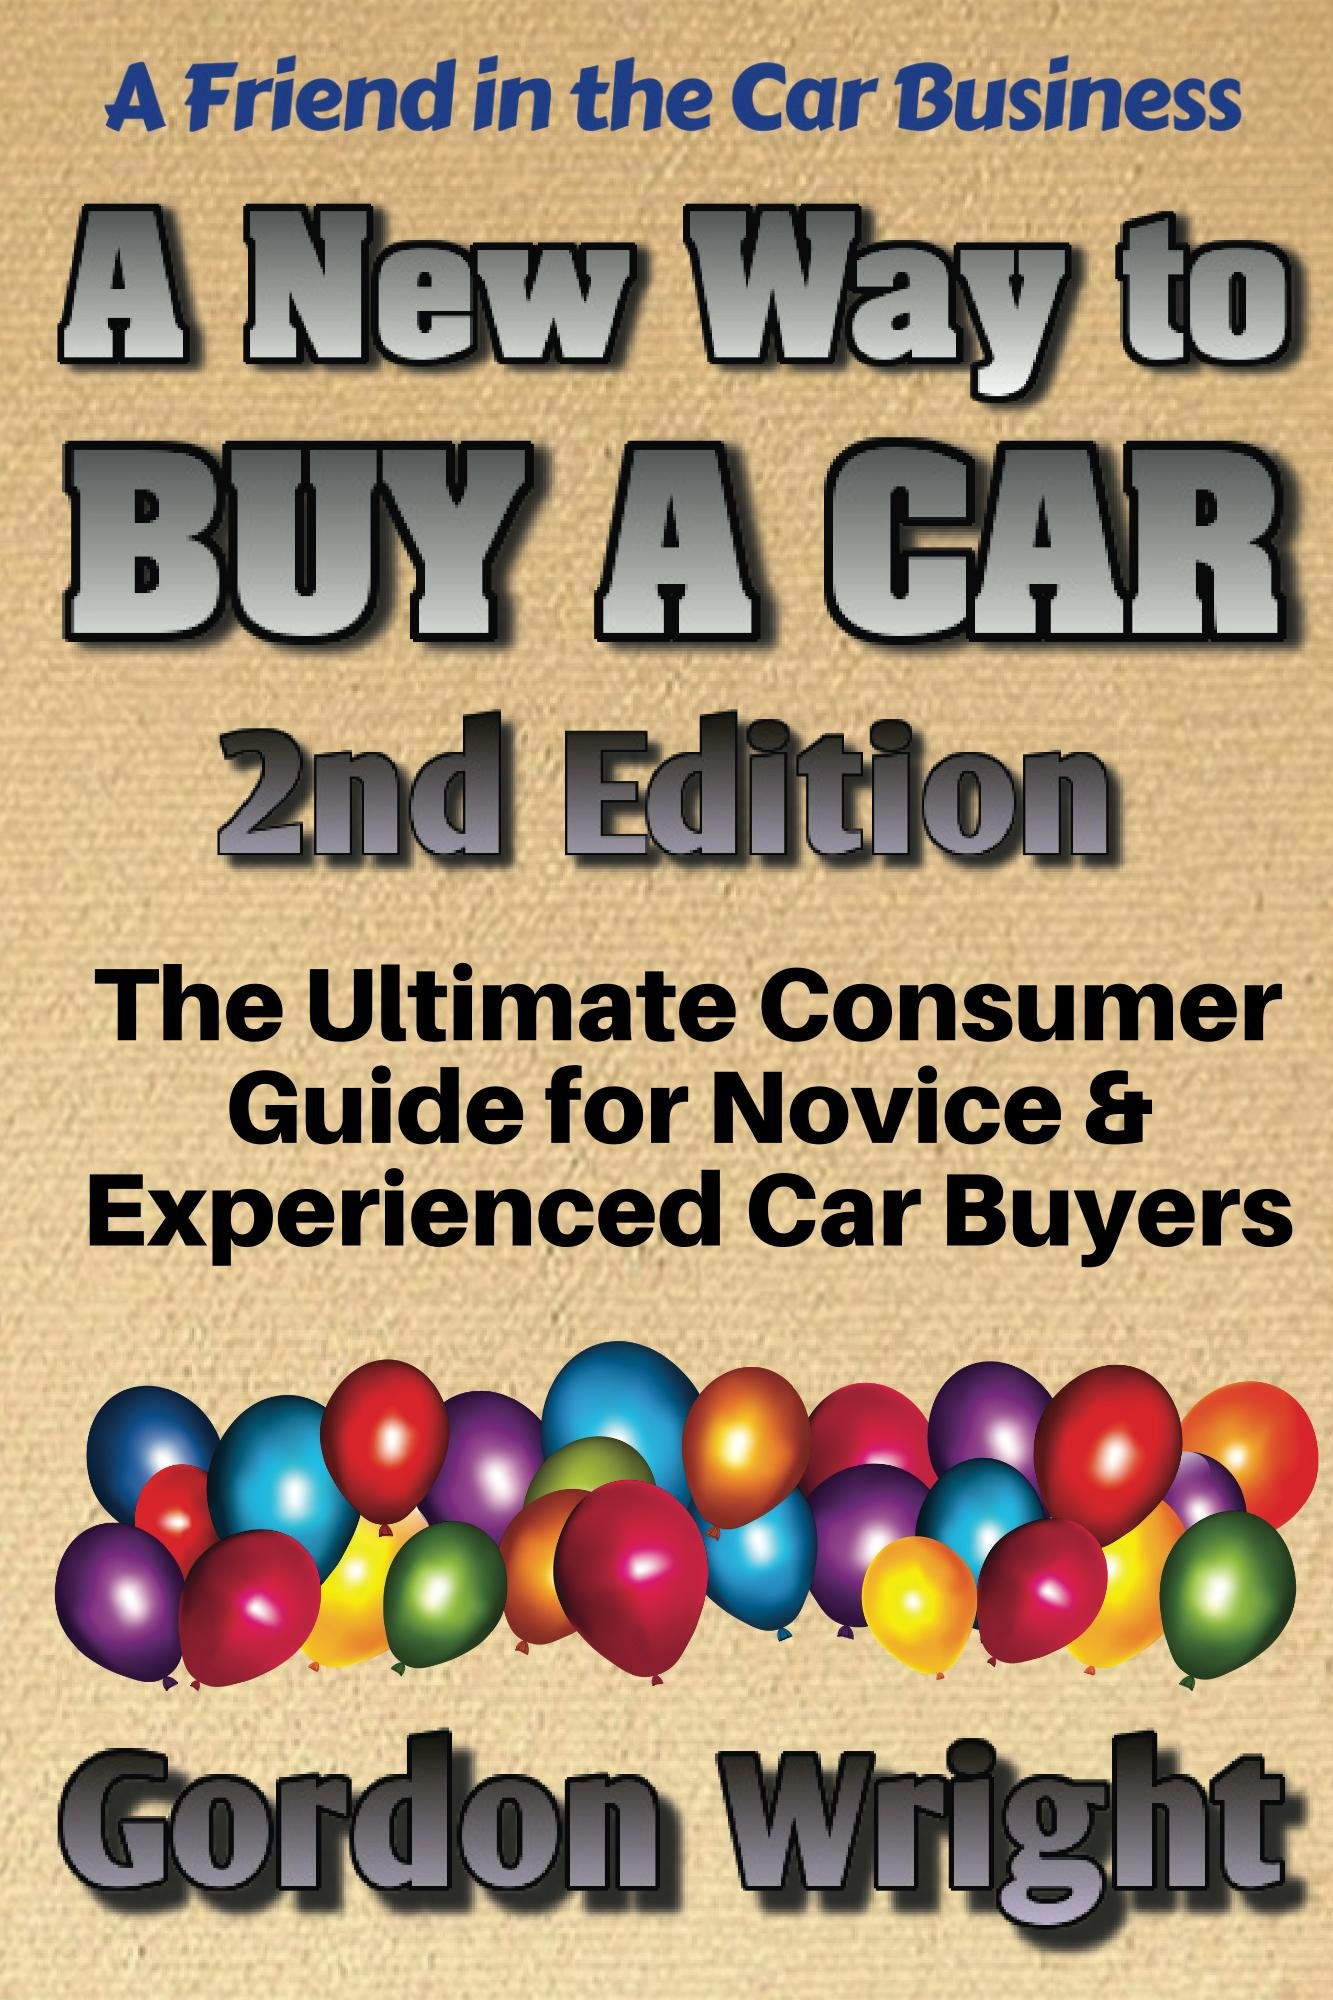 Image OfA New Way To Buy A Car - 2nd Edition: The Ultimate Consumer Awareness Guide For Novice & Experienced Car Buyers (English E...